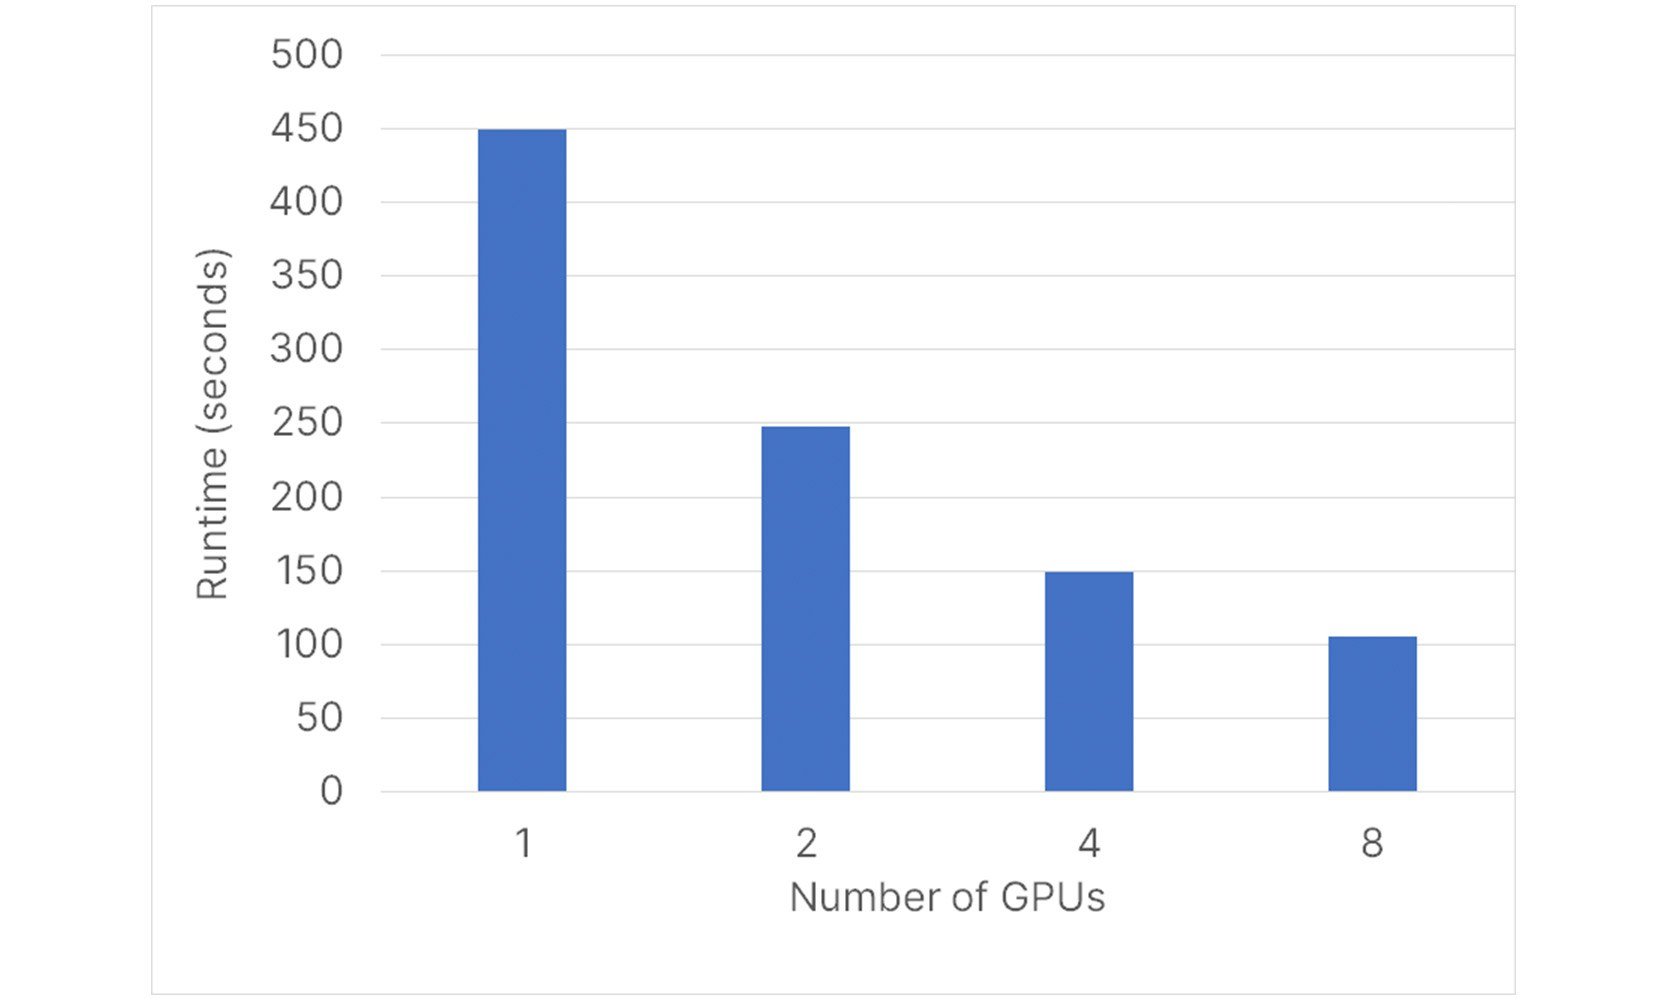 Strong scaling with gpus halves runtime